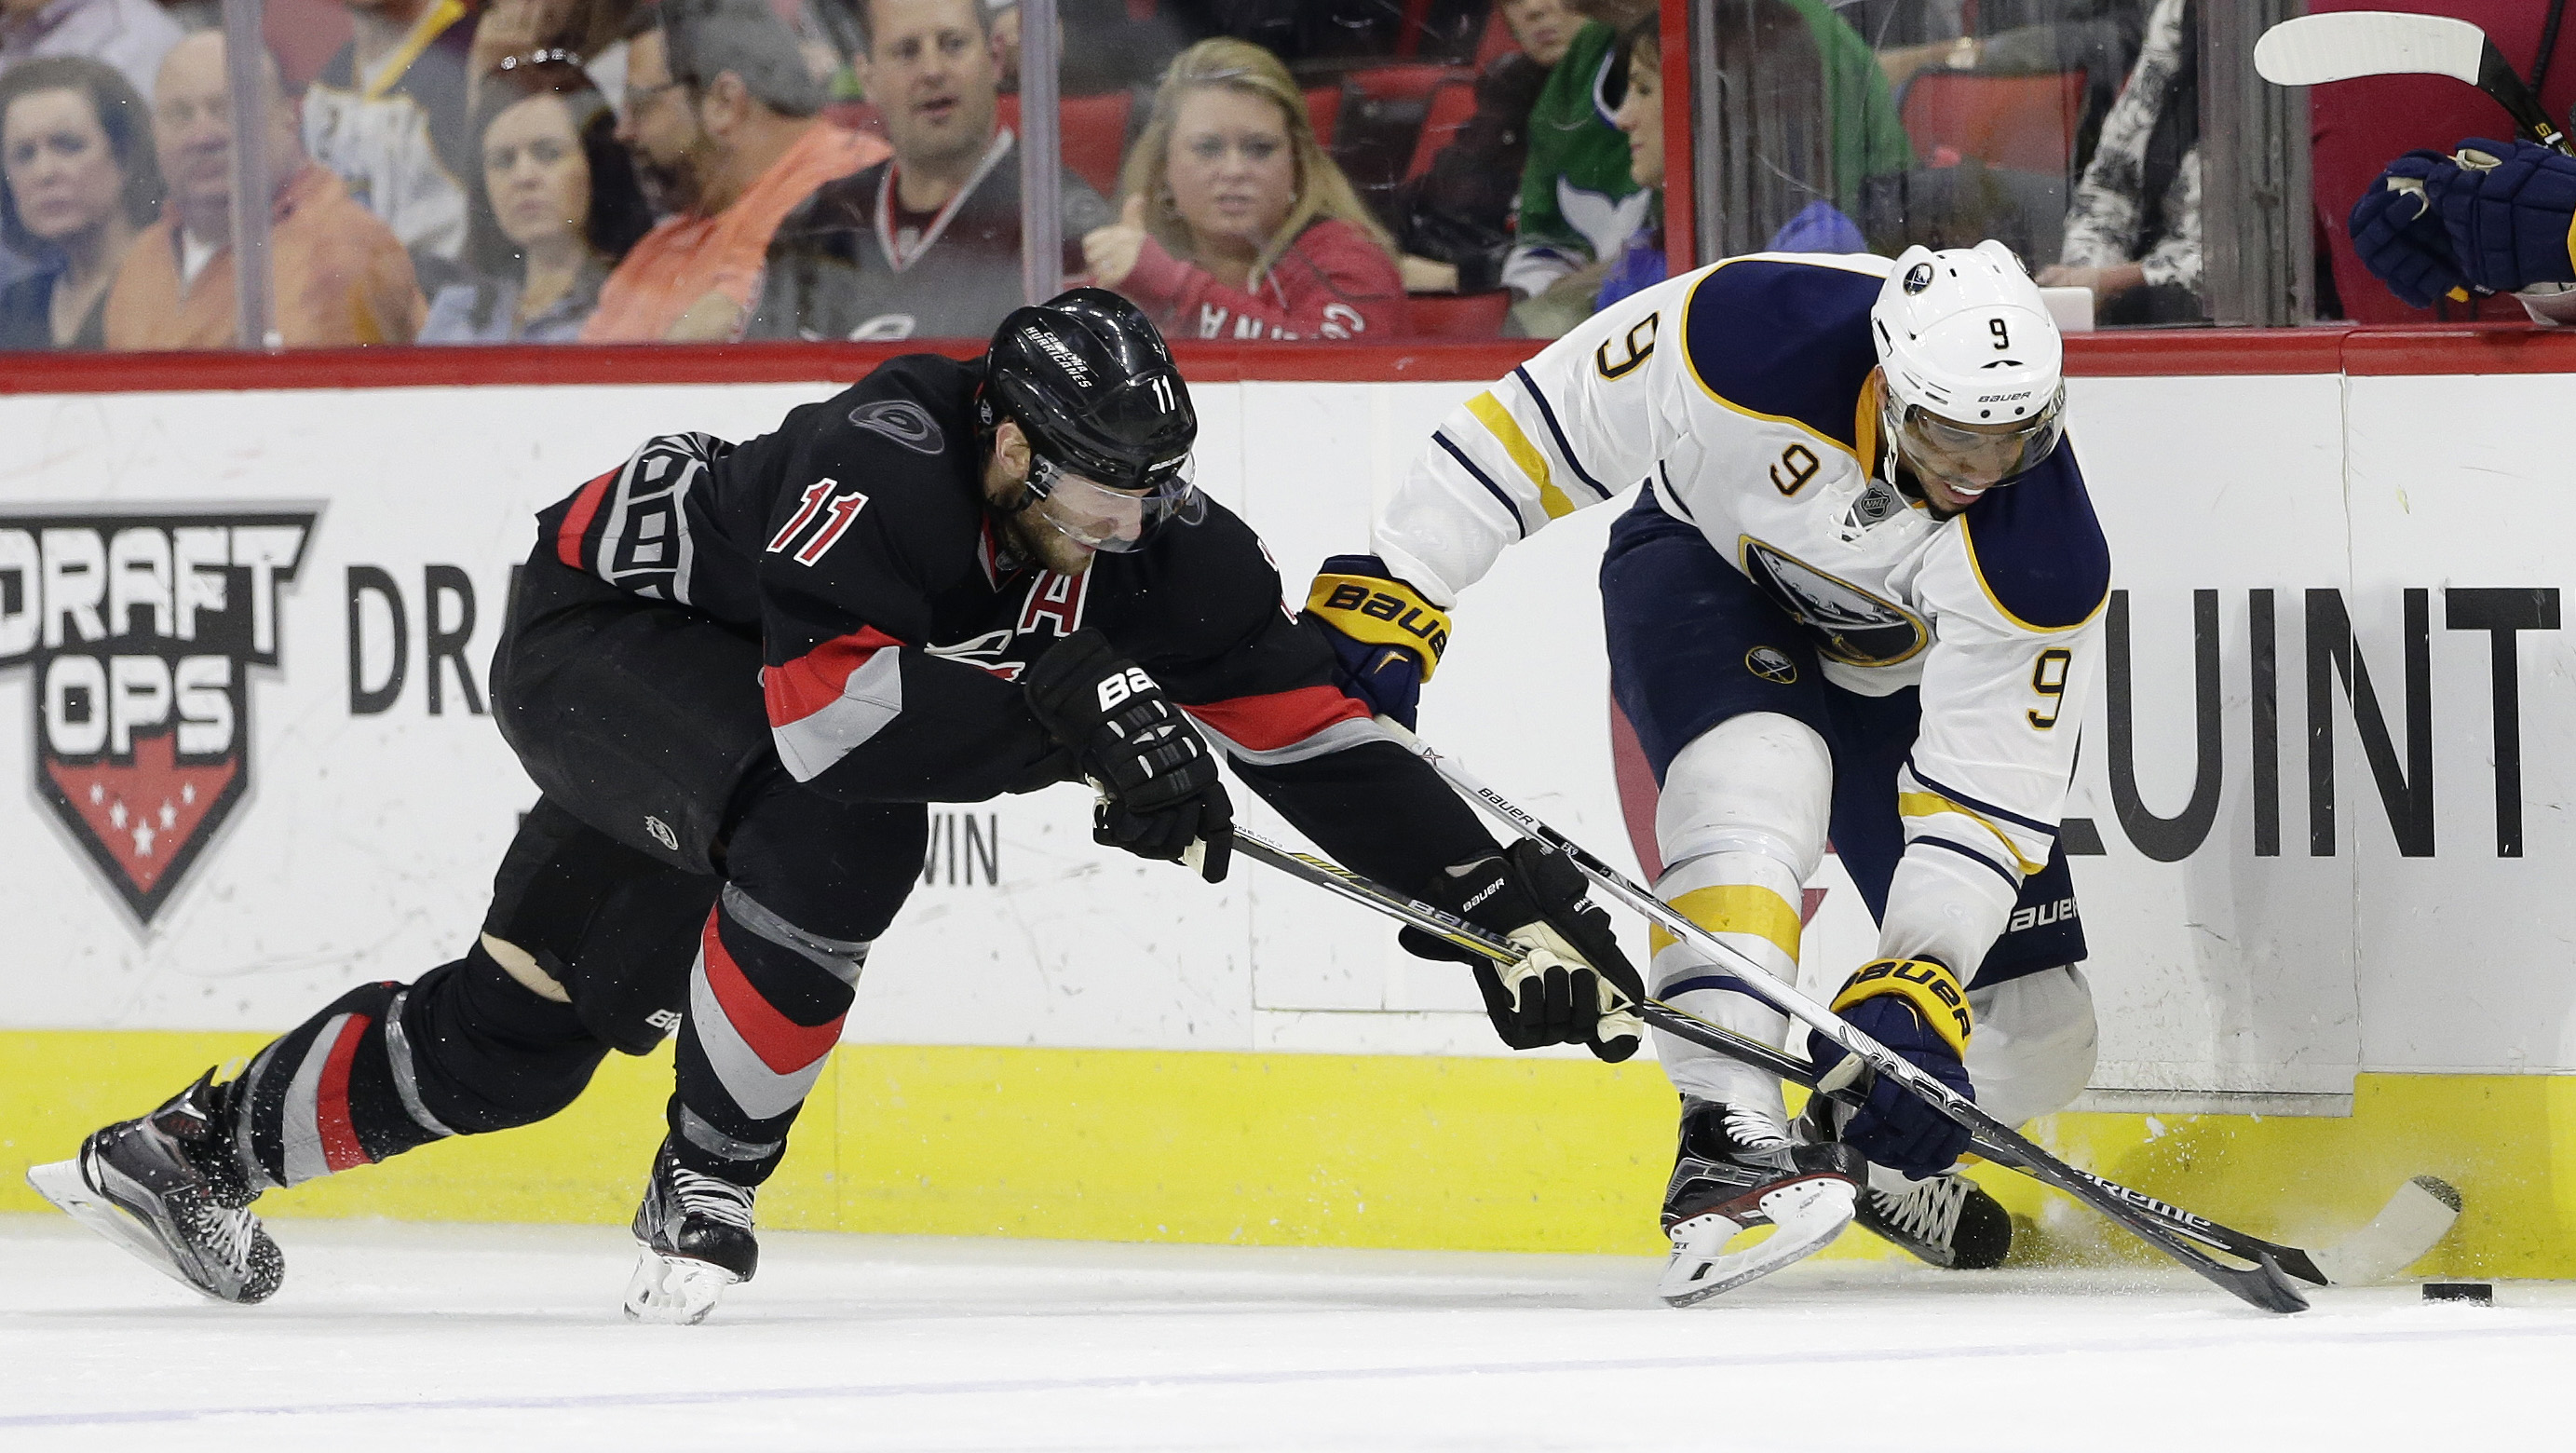 Buffalo Sabres' Evander Kane (9) and Carolina Hurricanes' Jordan Staal (11) chase the puck during the second period of an NHL hockey game in Raleigh, N.C., Tuesday, March 22, 2016. Buffalo won 3-2. (AP Photo/Gerry Broome)